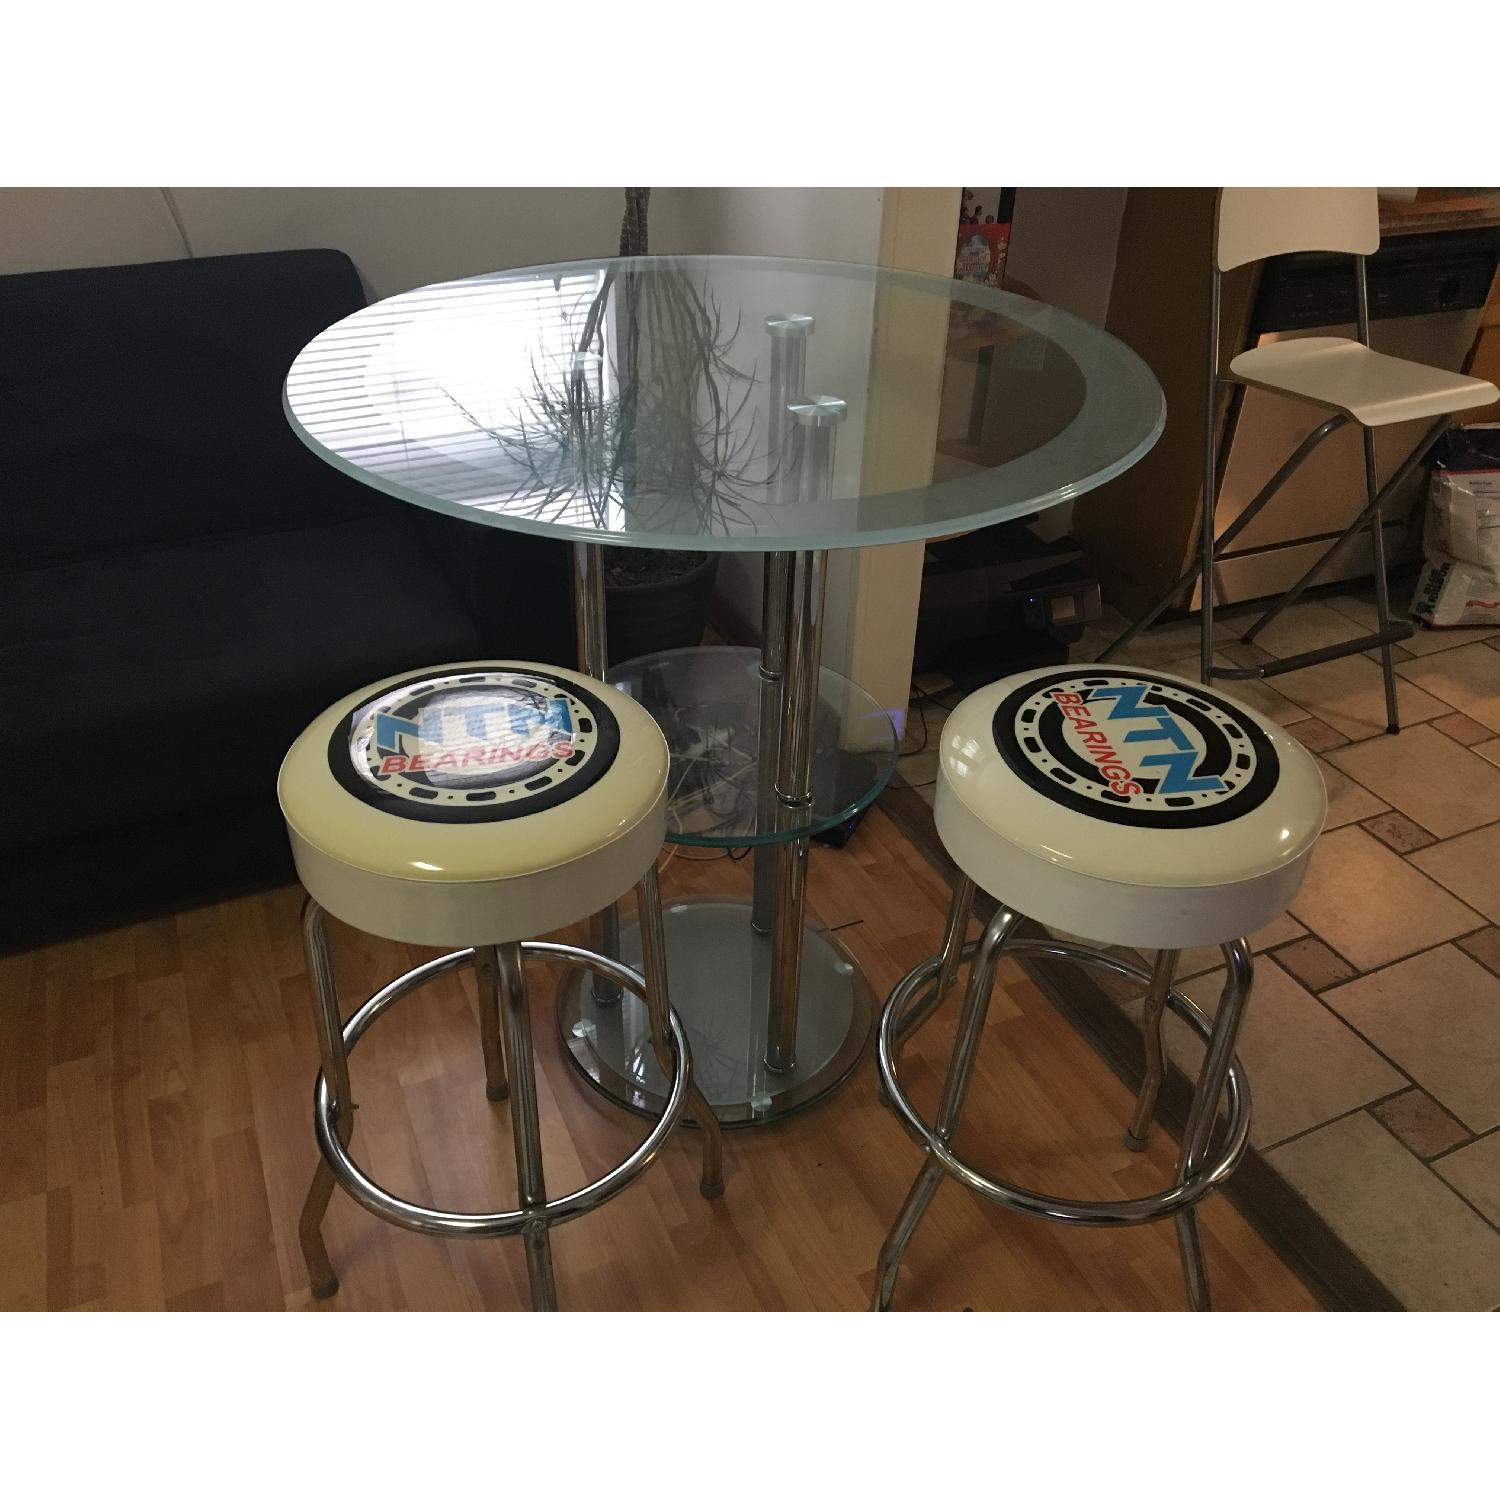 Bar Table w/ 2 Chairs - image-1